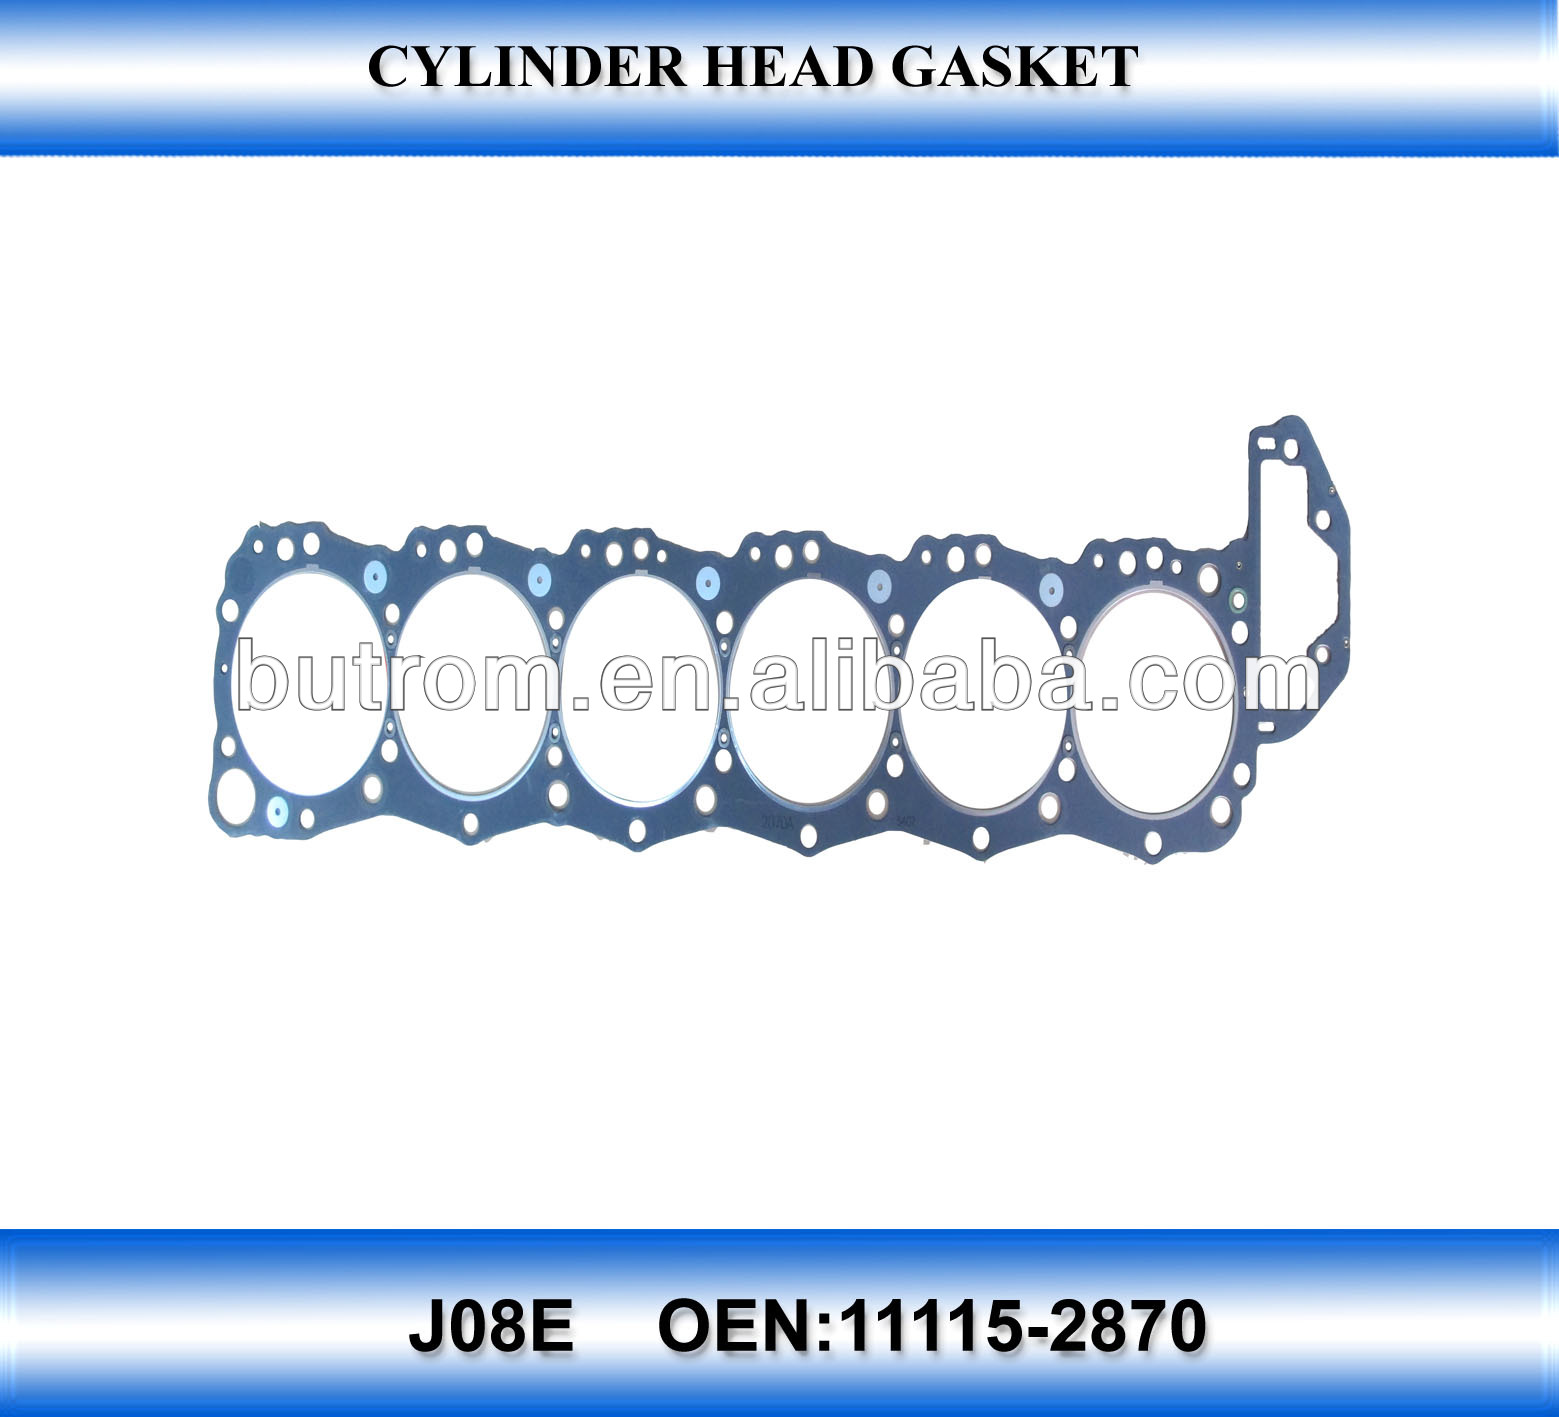 11115-2870 For Jo8e Hino Truck Engine Gasket - Buy Cylinder Head Gasket  Material,Head Gasket,Cylinder Head Gasket Product on Alibaba.com